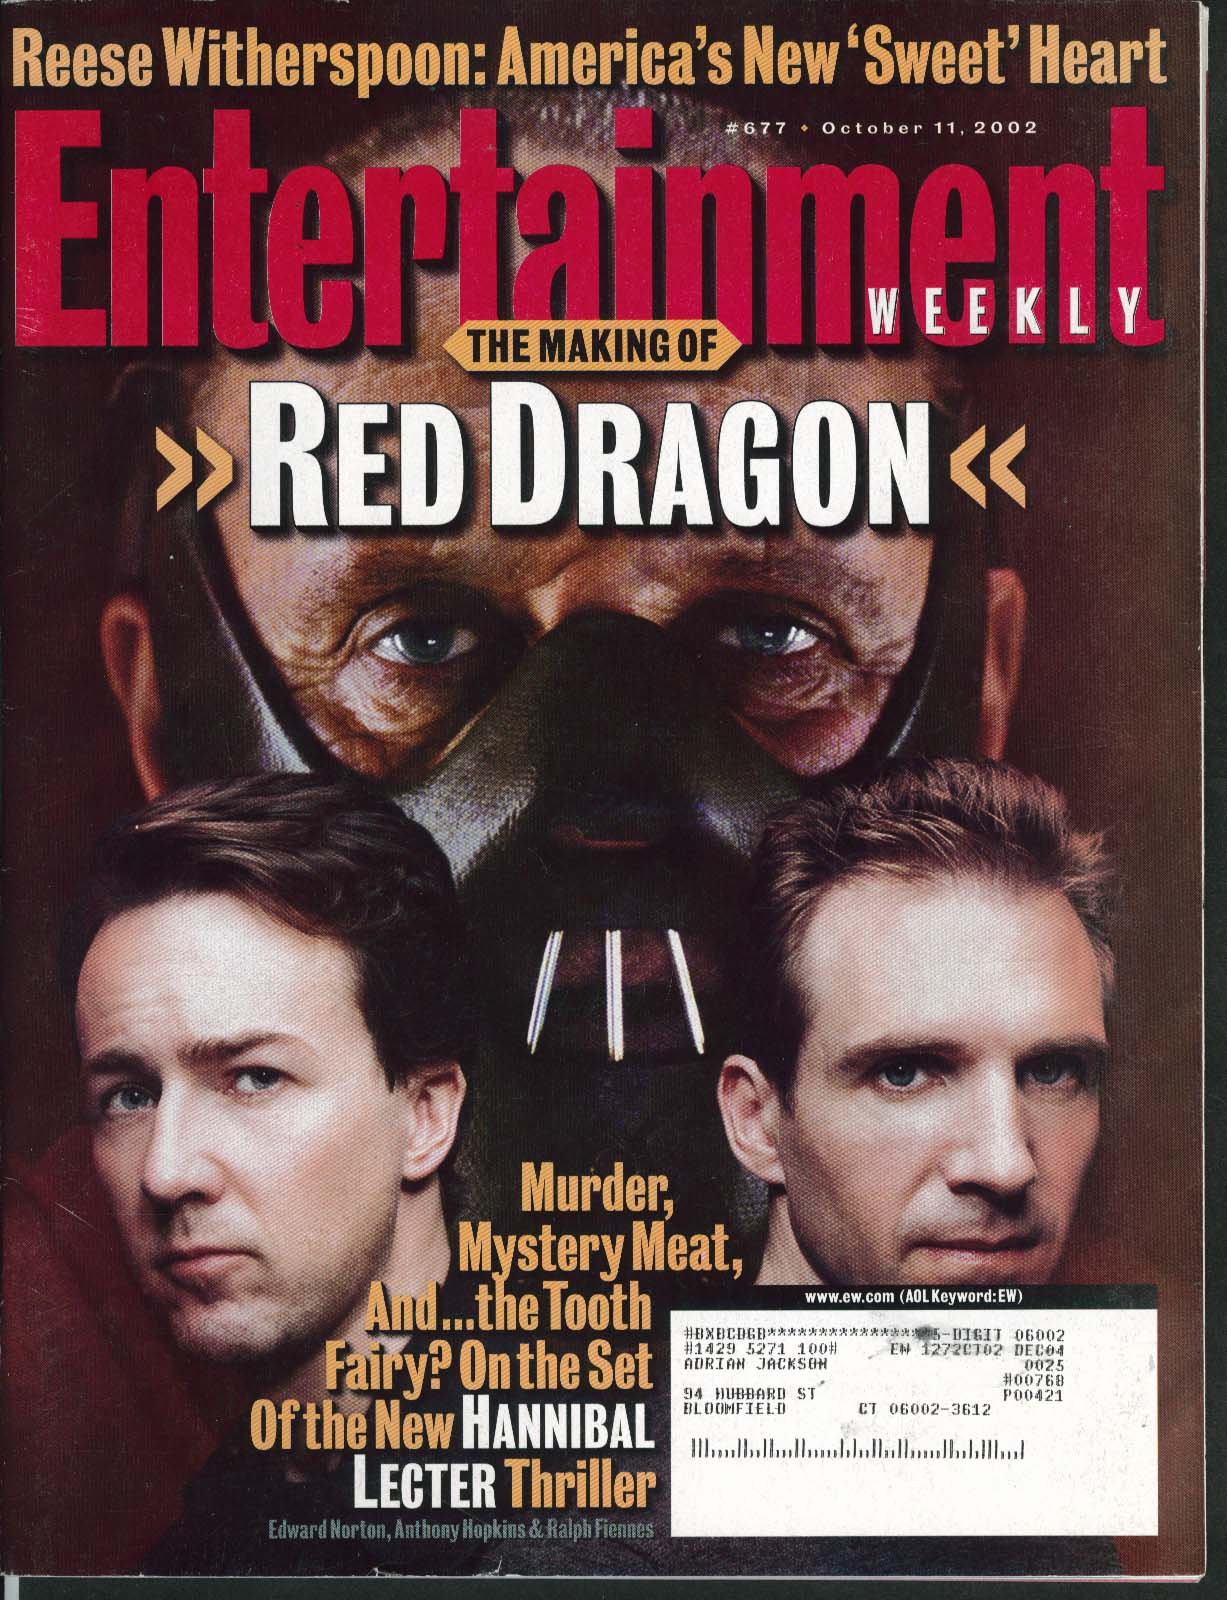 ENTERTAINMENT WEEKLY Red Dragon Anthony Hopkins Reese Witherspoon ++ 10/11 2002